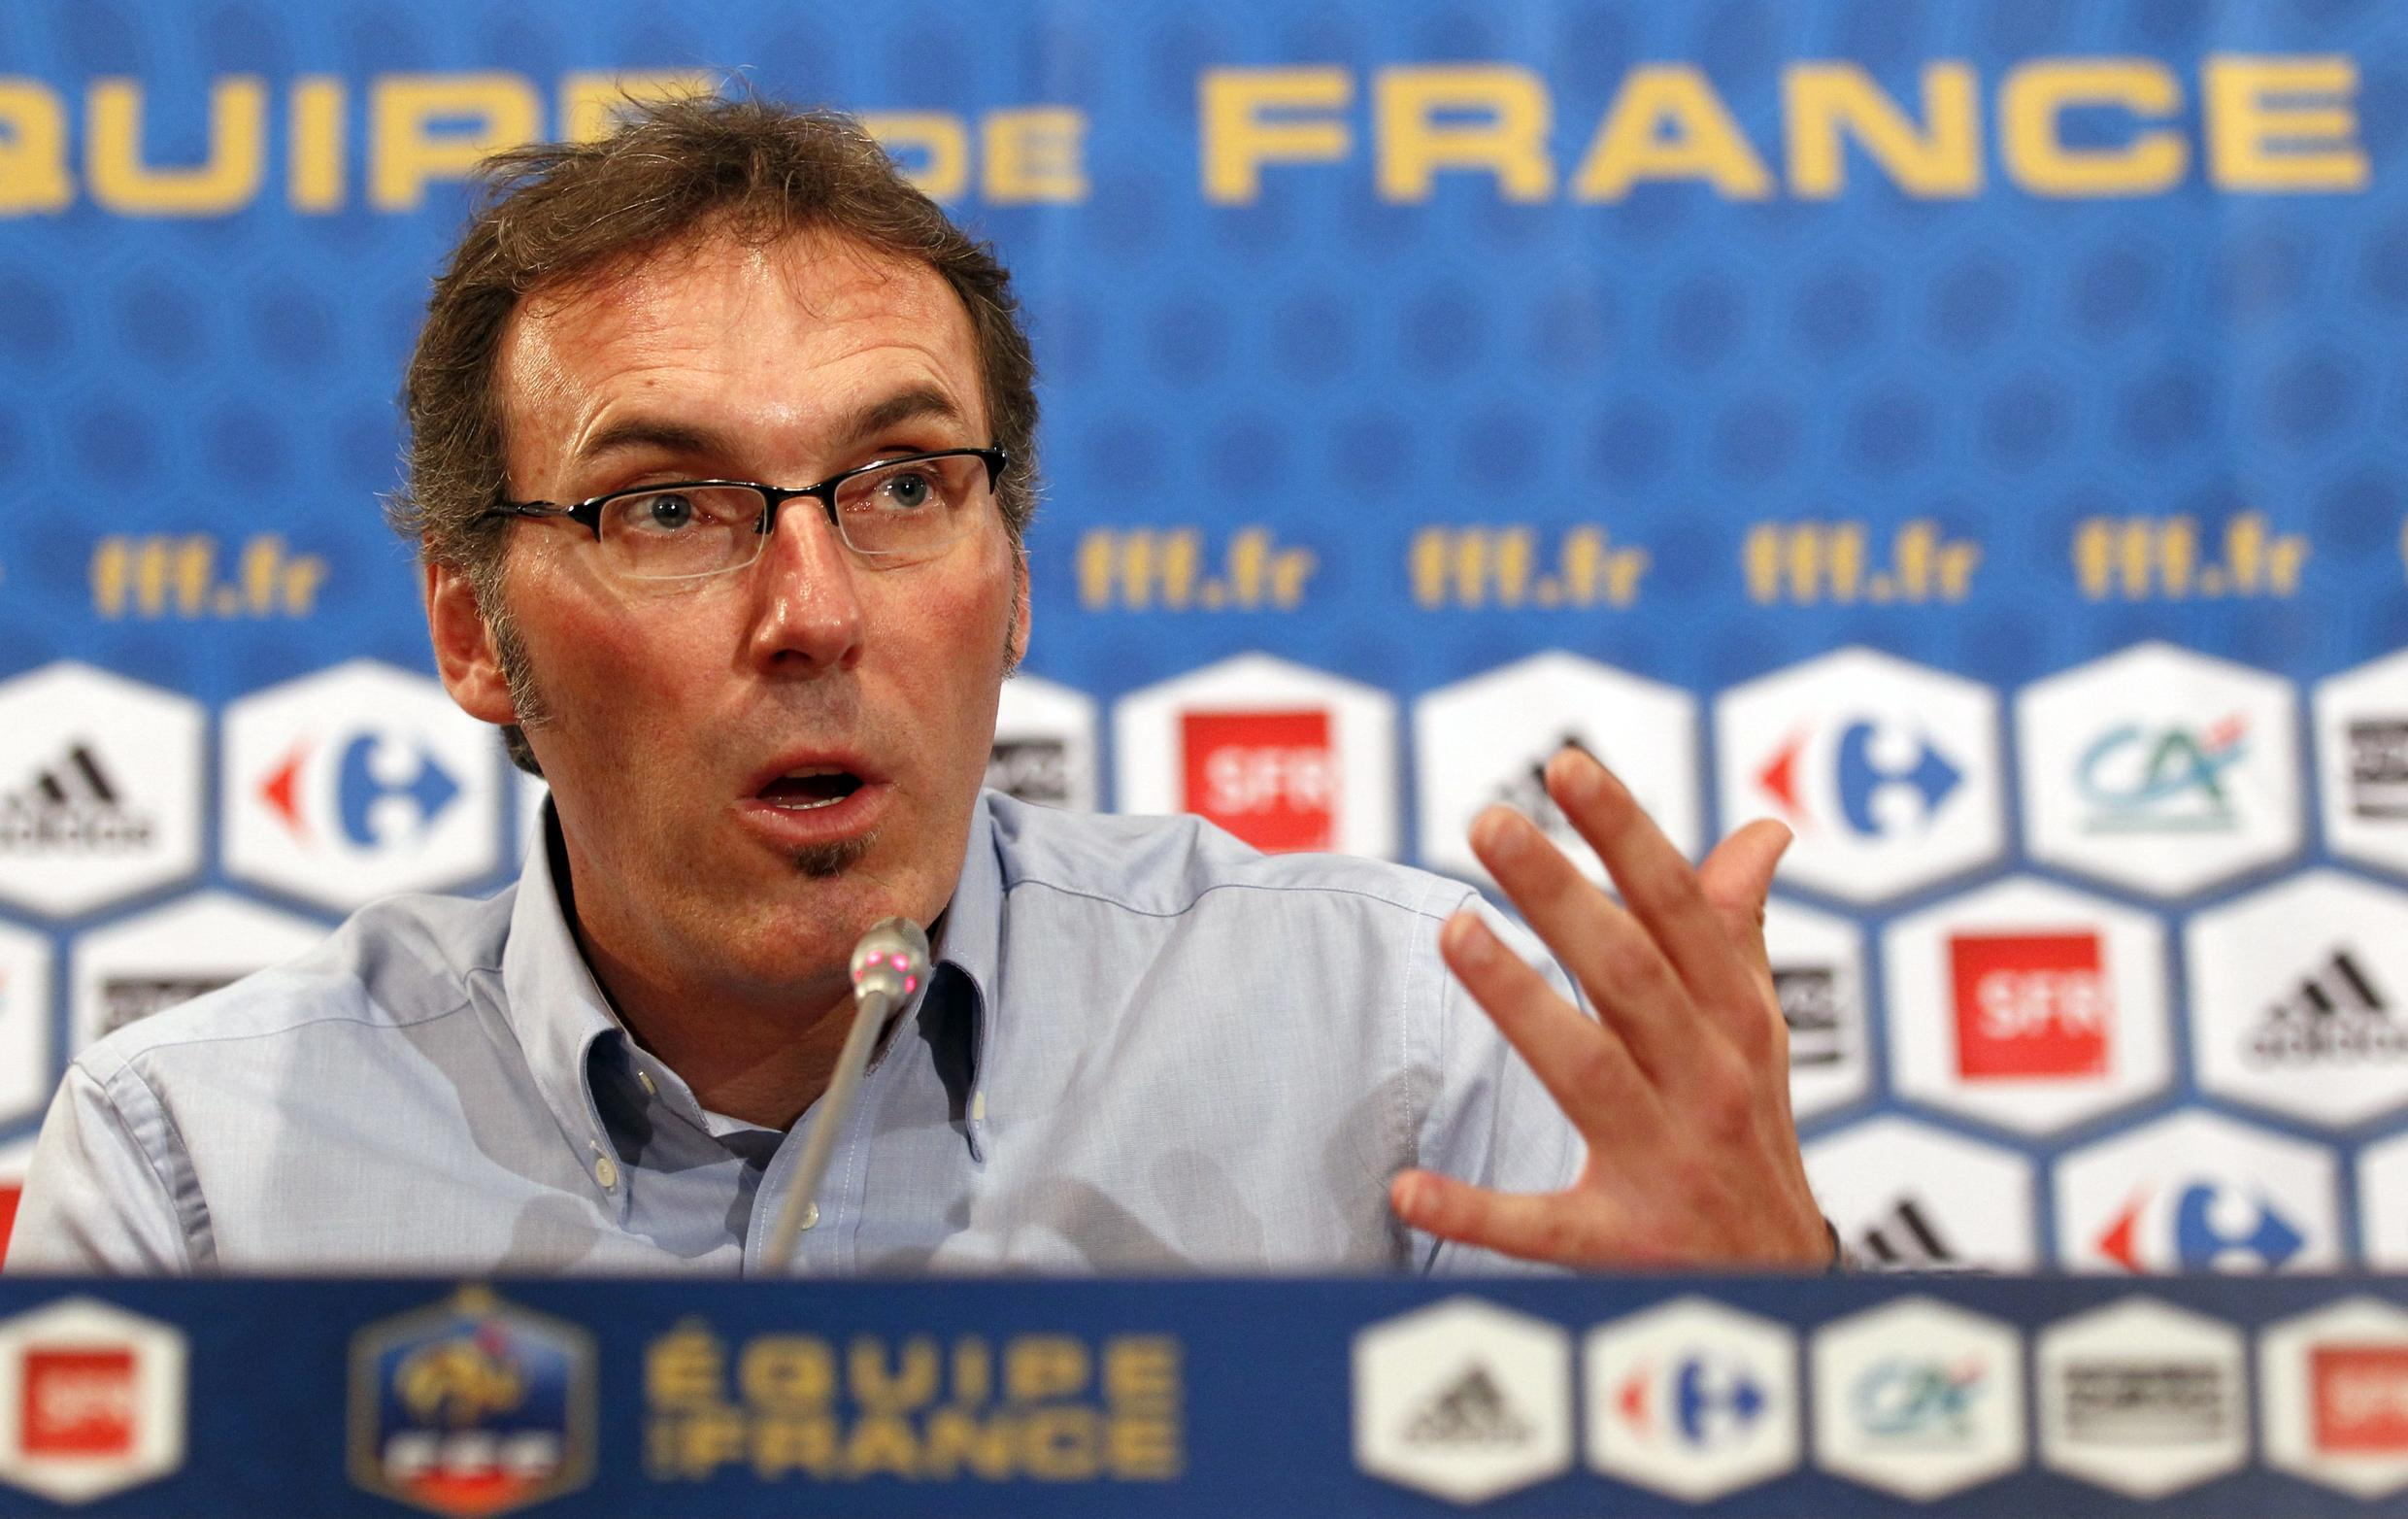 Laurent Blanc addressing his first news conference as coach on 6 July